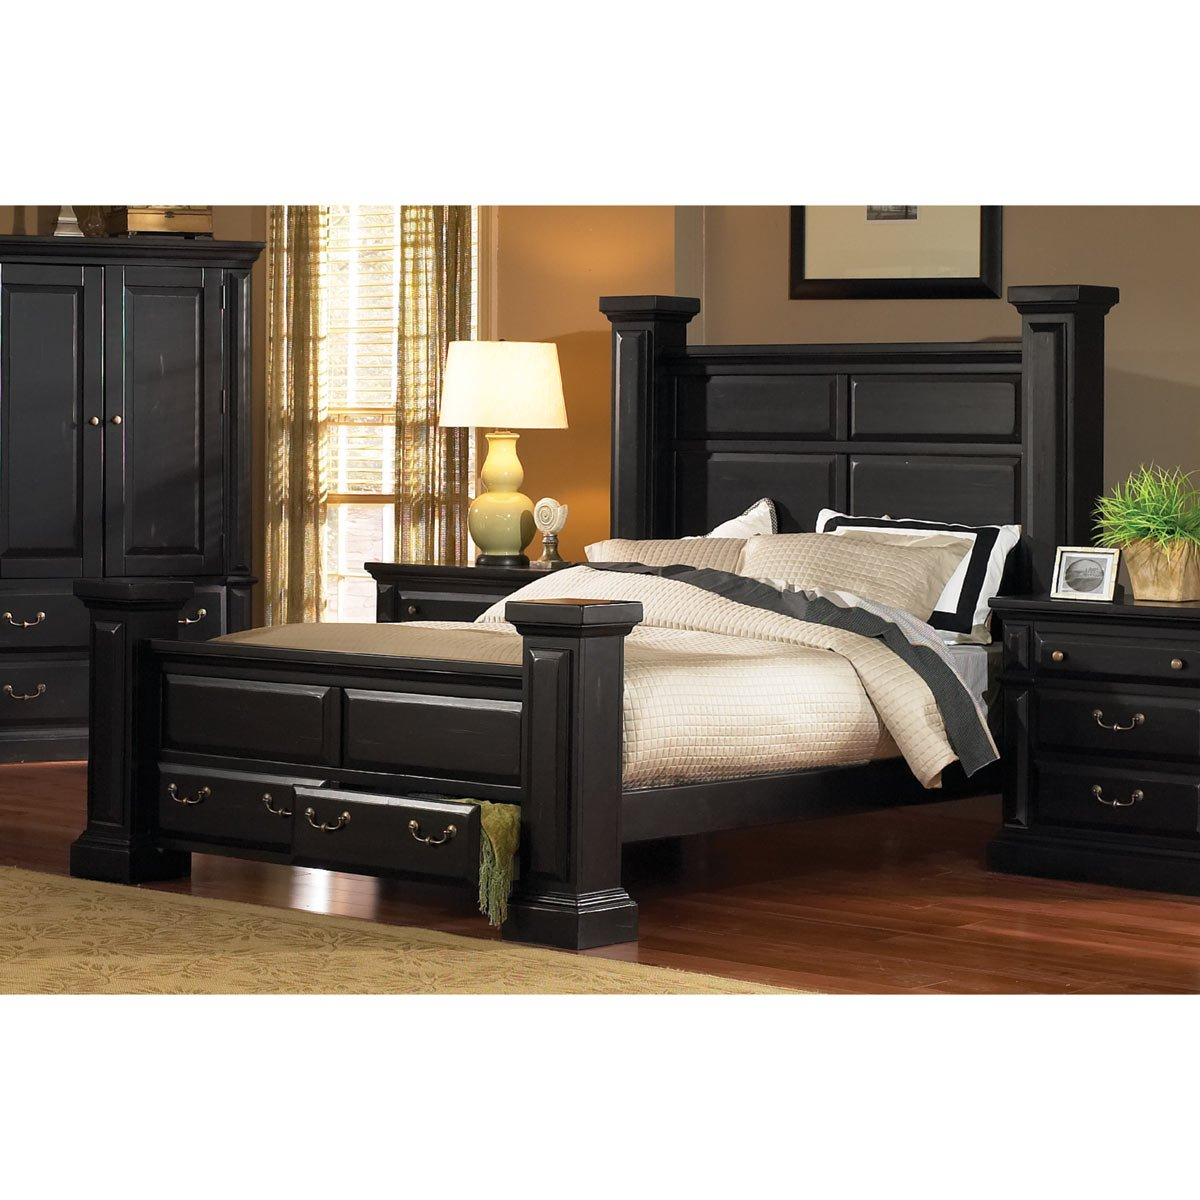 black bedroom furniture sets king | Torreon Black 6-Piece King Bedroom Set | RC Willey ...